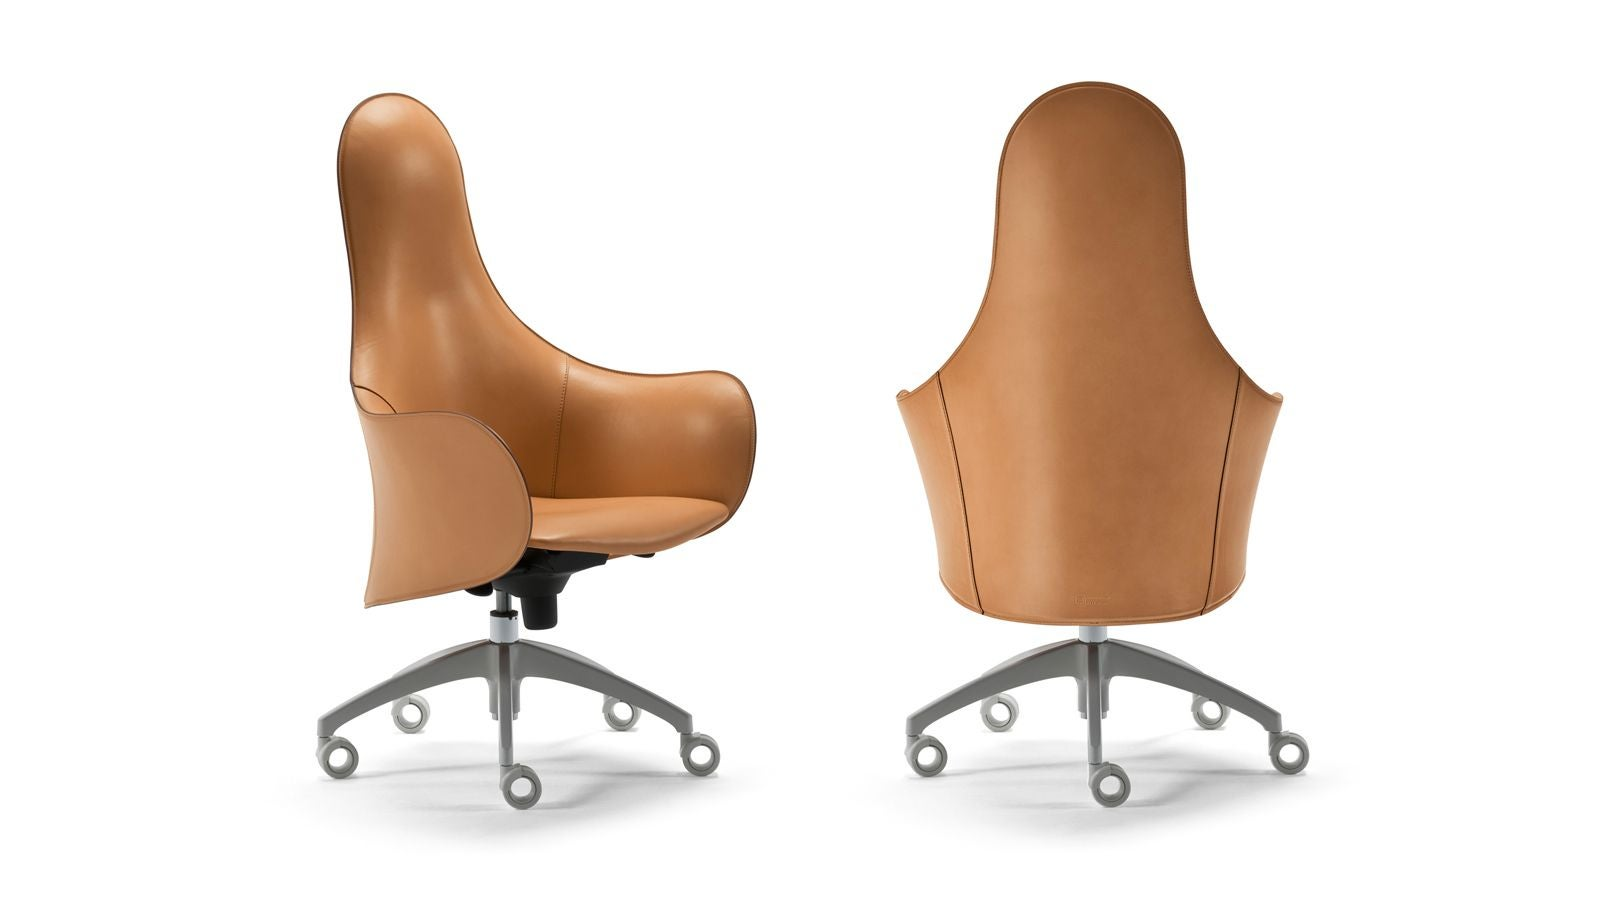 Italian Modern Office Chair Organic Design Made In Italy New For At 1stdibs